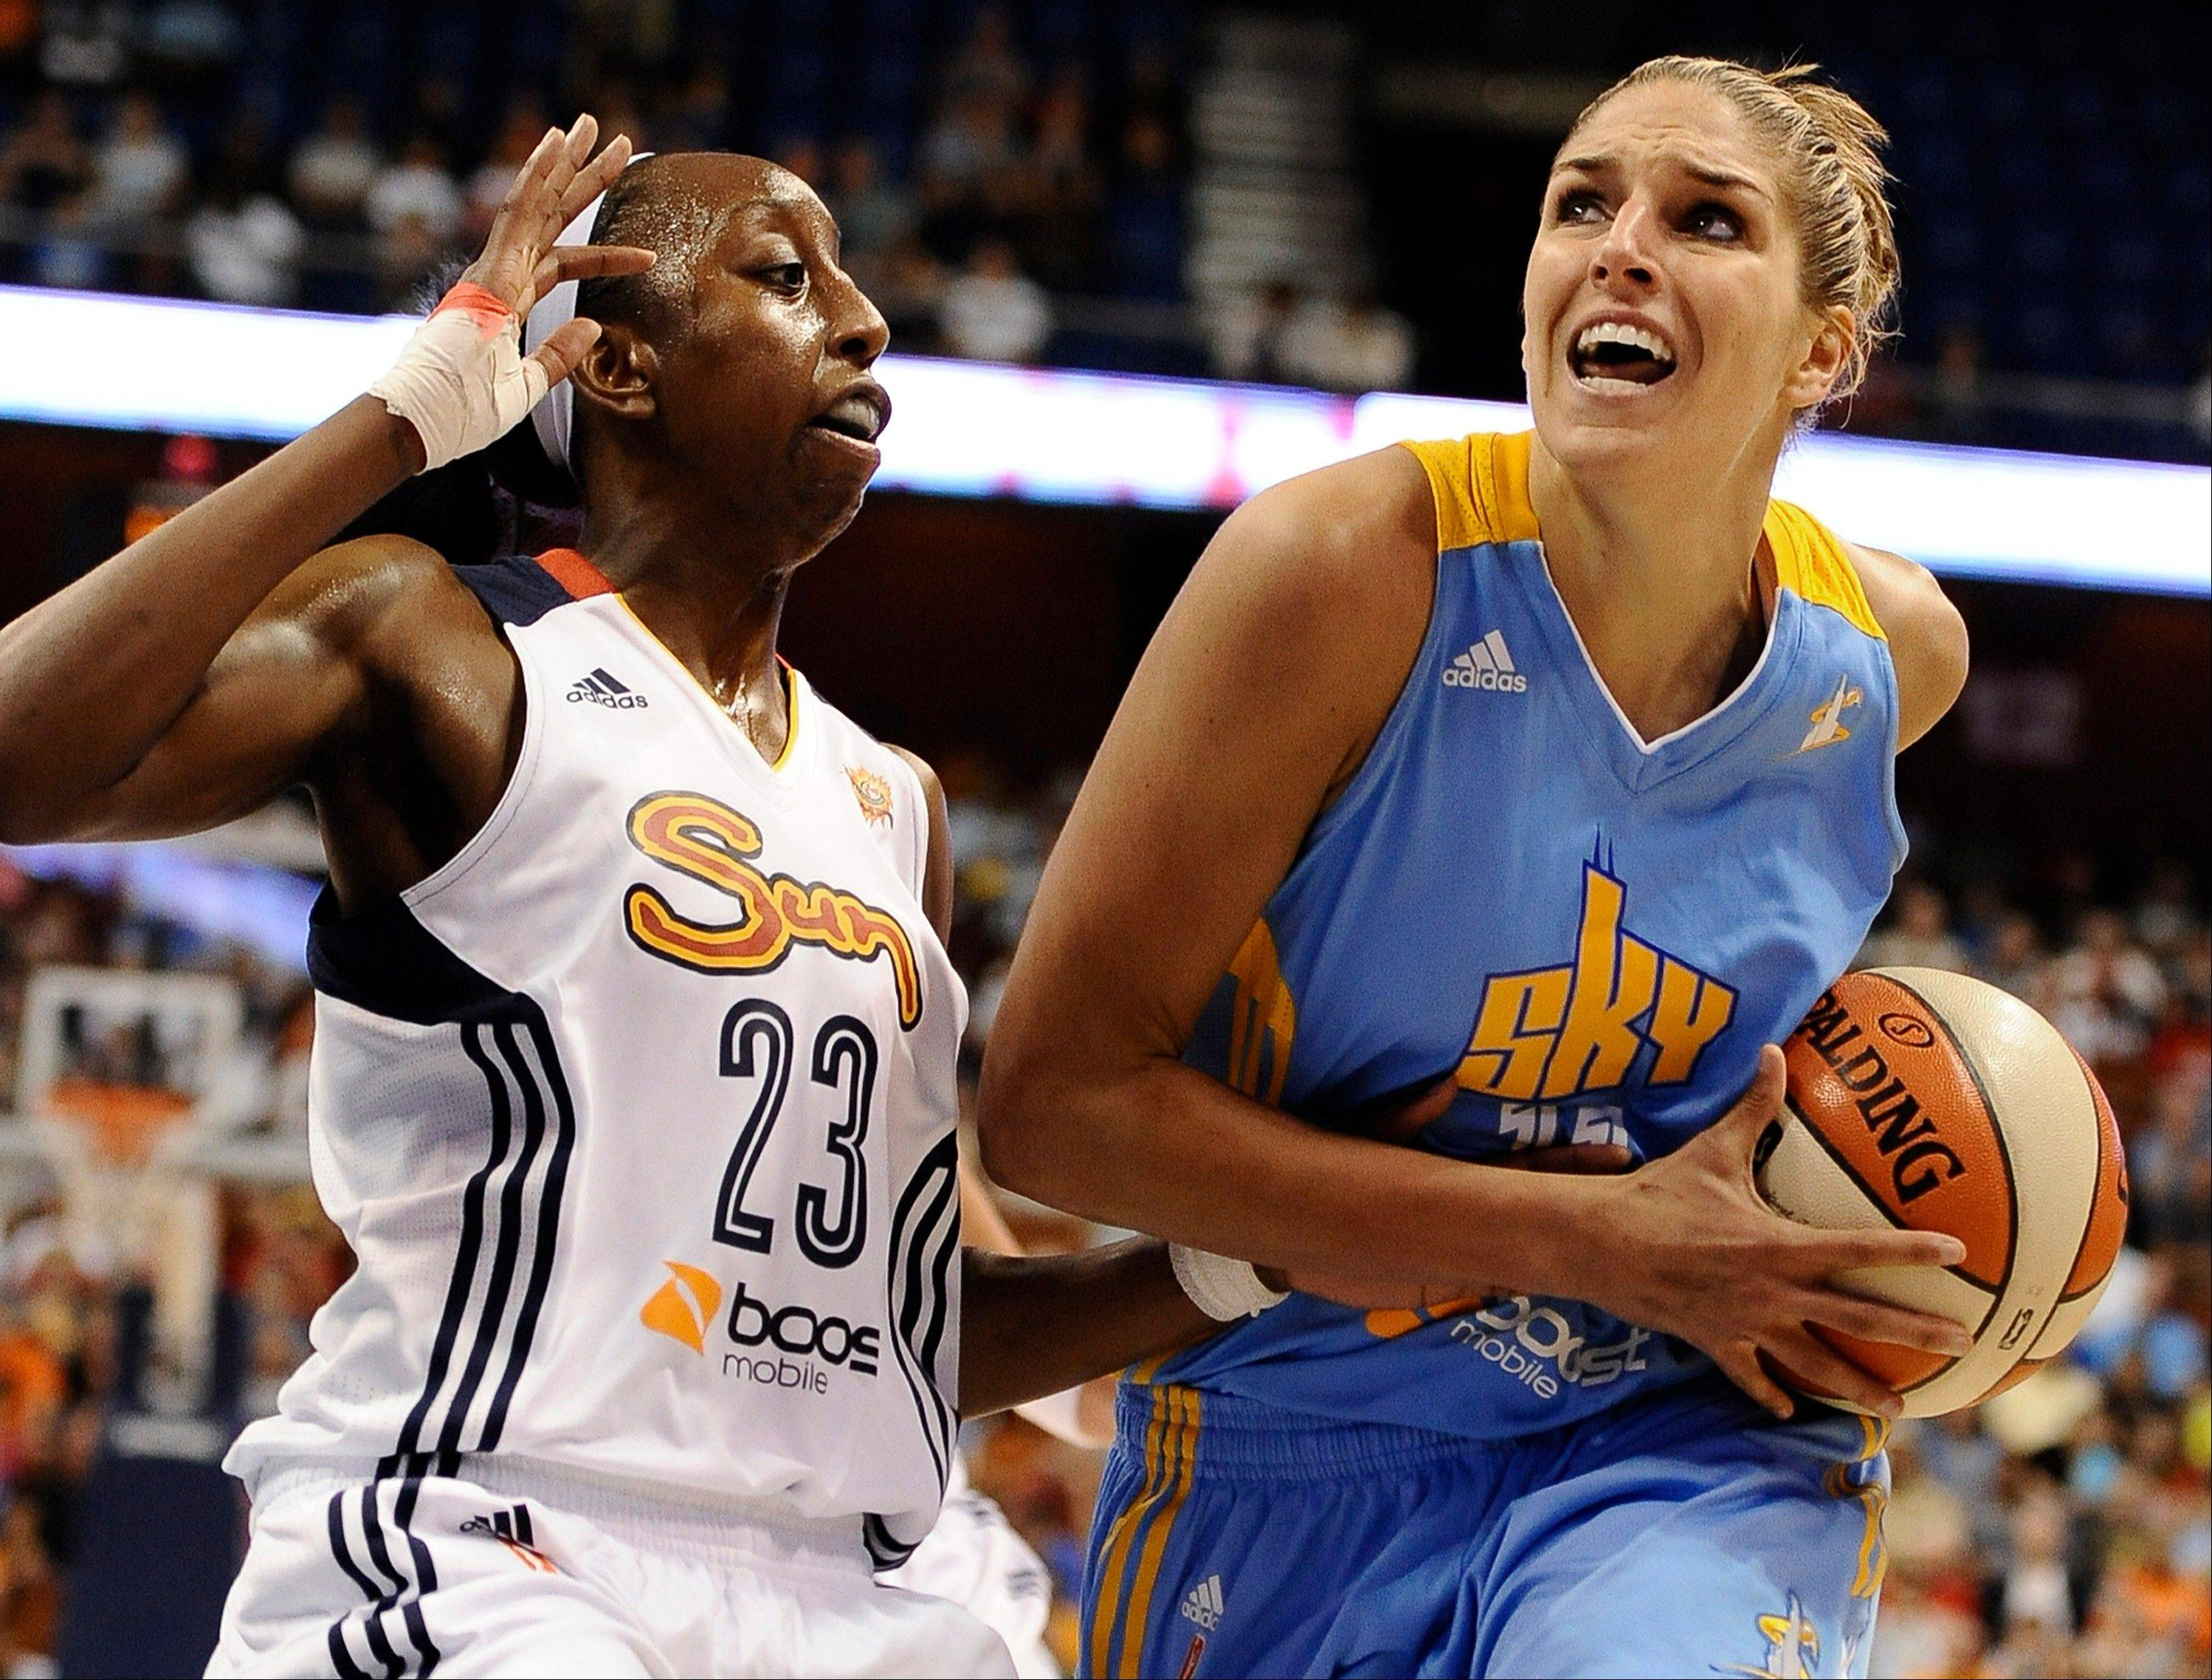 Chicago Sky�s Elena Delle Donne, right, won�t play in Saturday�s WNBA All-Star Game after suffering a concussion on Wednesday. Delle Donne is the first WNBA rookie to lead the fan voting for the contest.